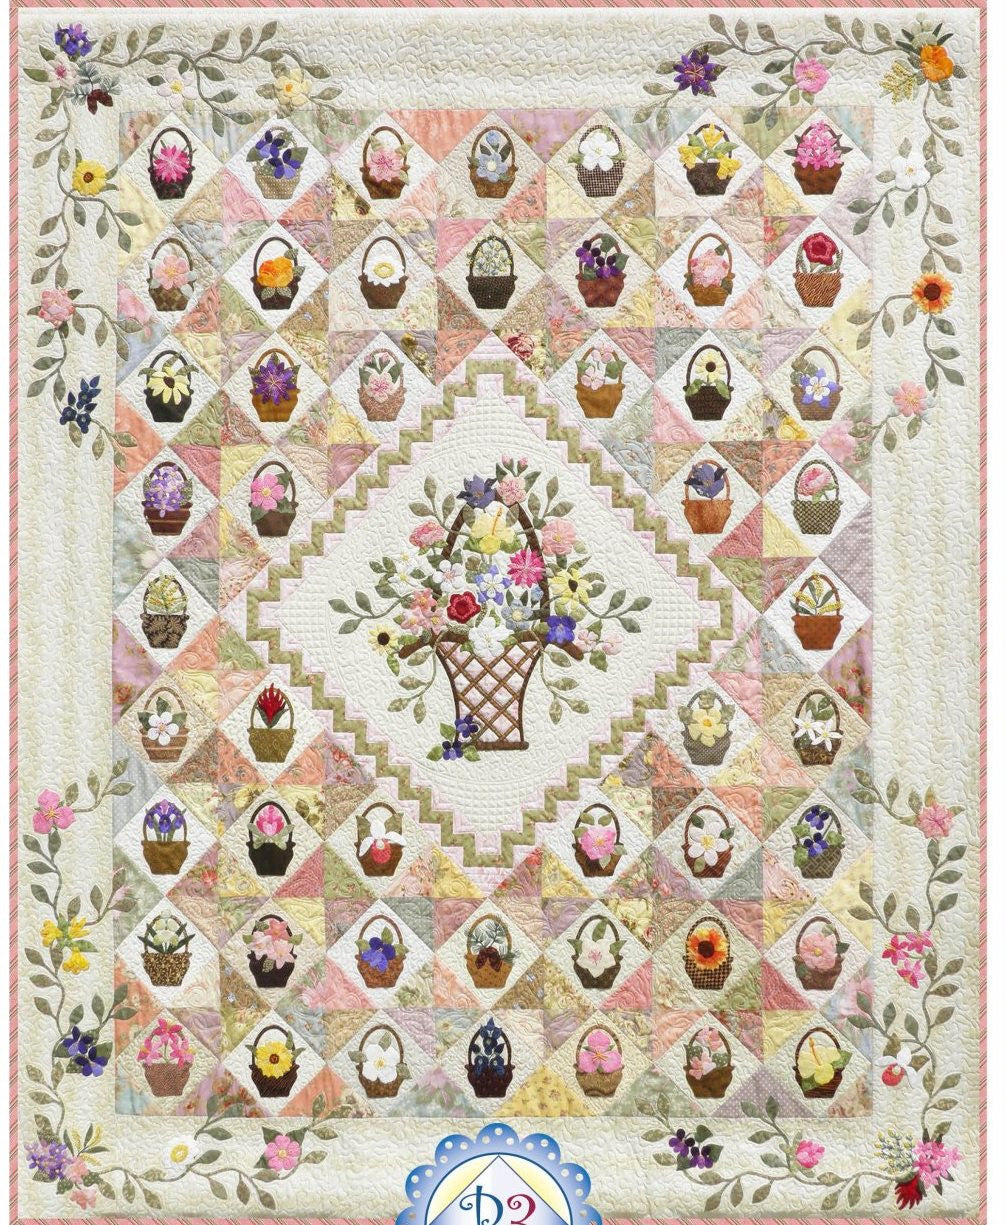 Bountiful Baskets Quilt